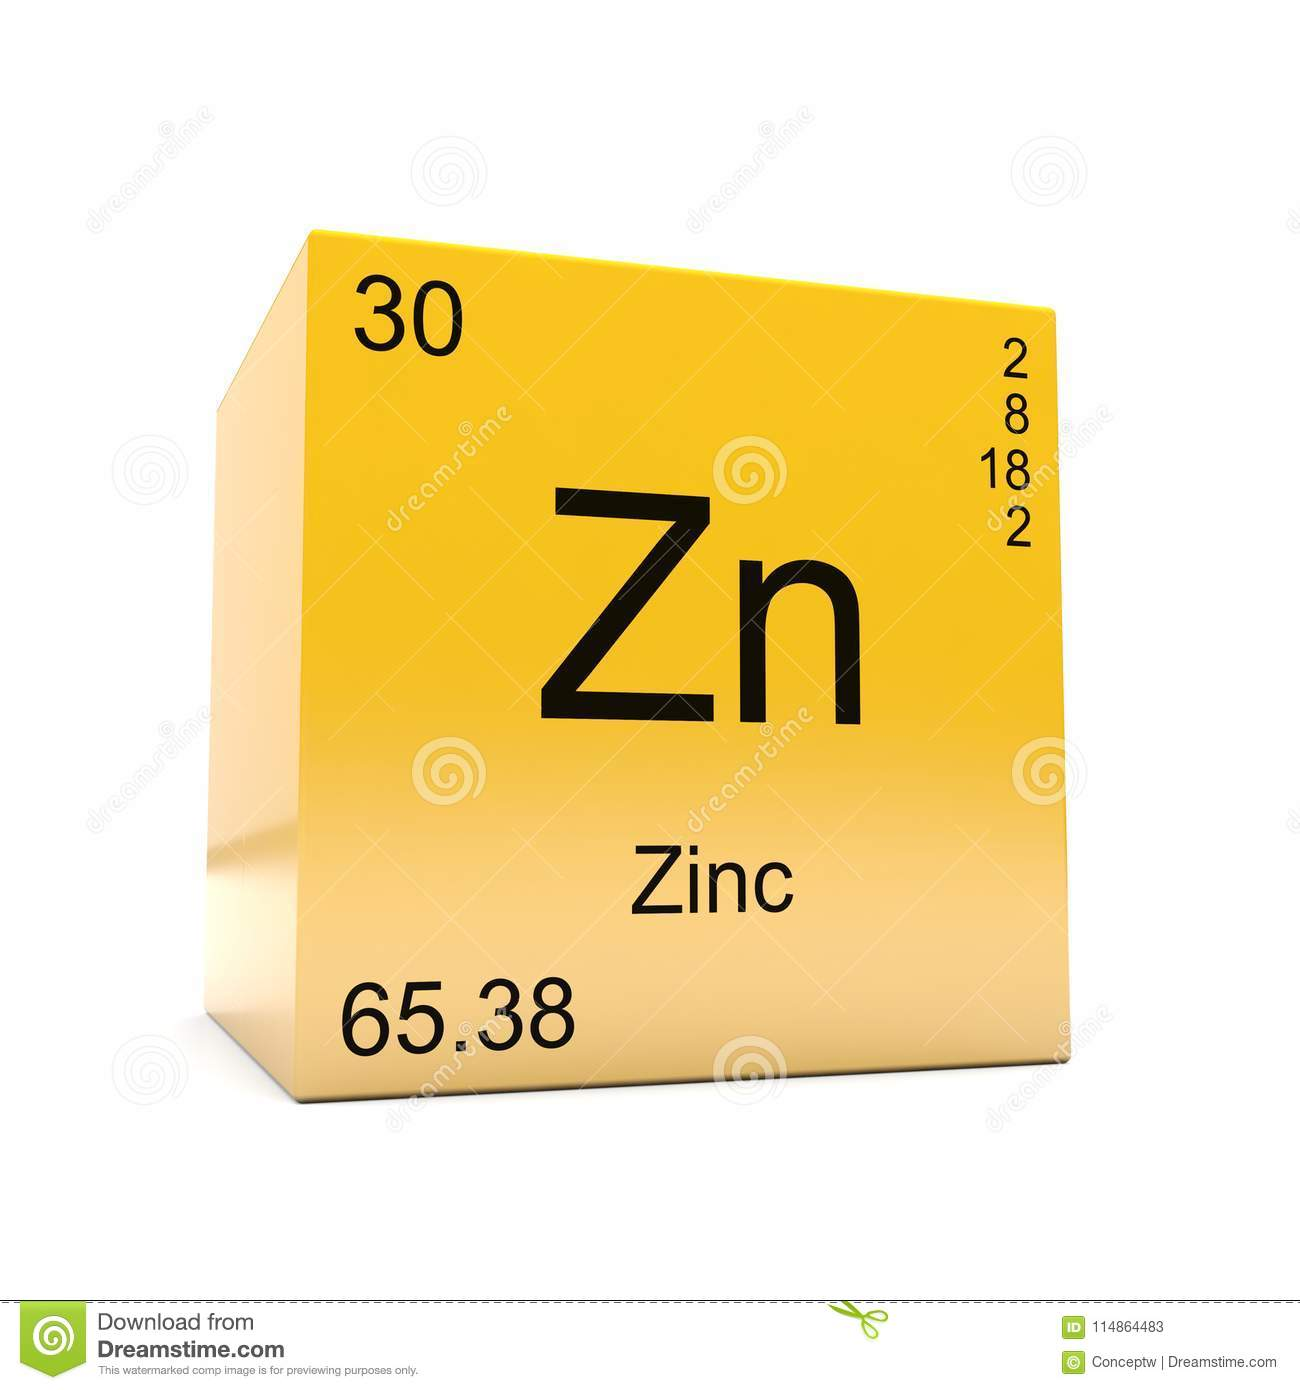 Zinc Chemical Element Symbol From Periodic Table Stock Illustration